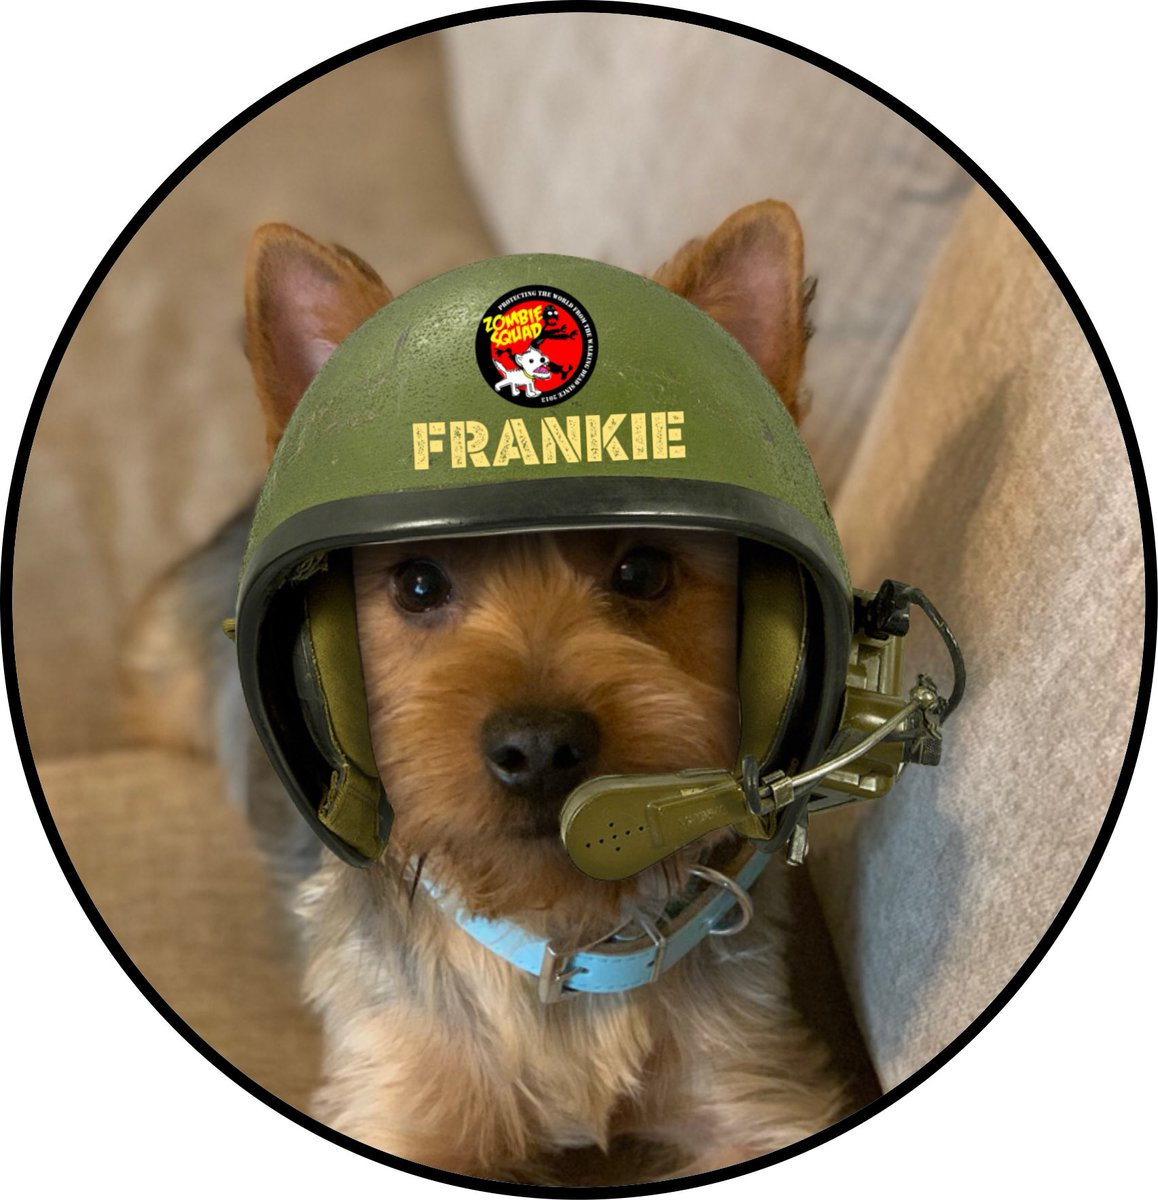 Welcome to #ZSHQ Pvt Frankie @frankie_yorkie we gave prepared your patrol kit, bark when you need support from @ZombieSquadHQ *salutes* https://t.co/MdKLBXMKhb